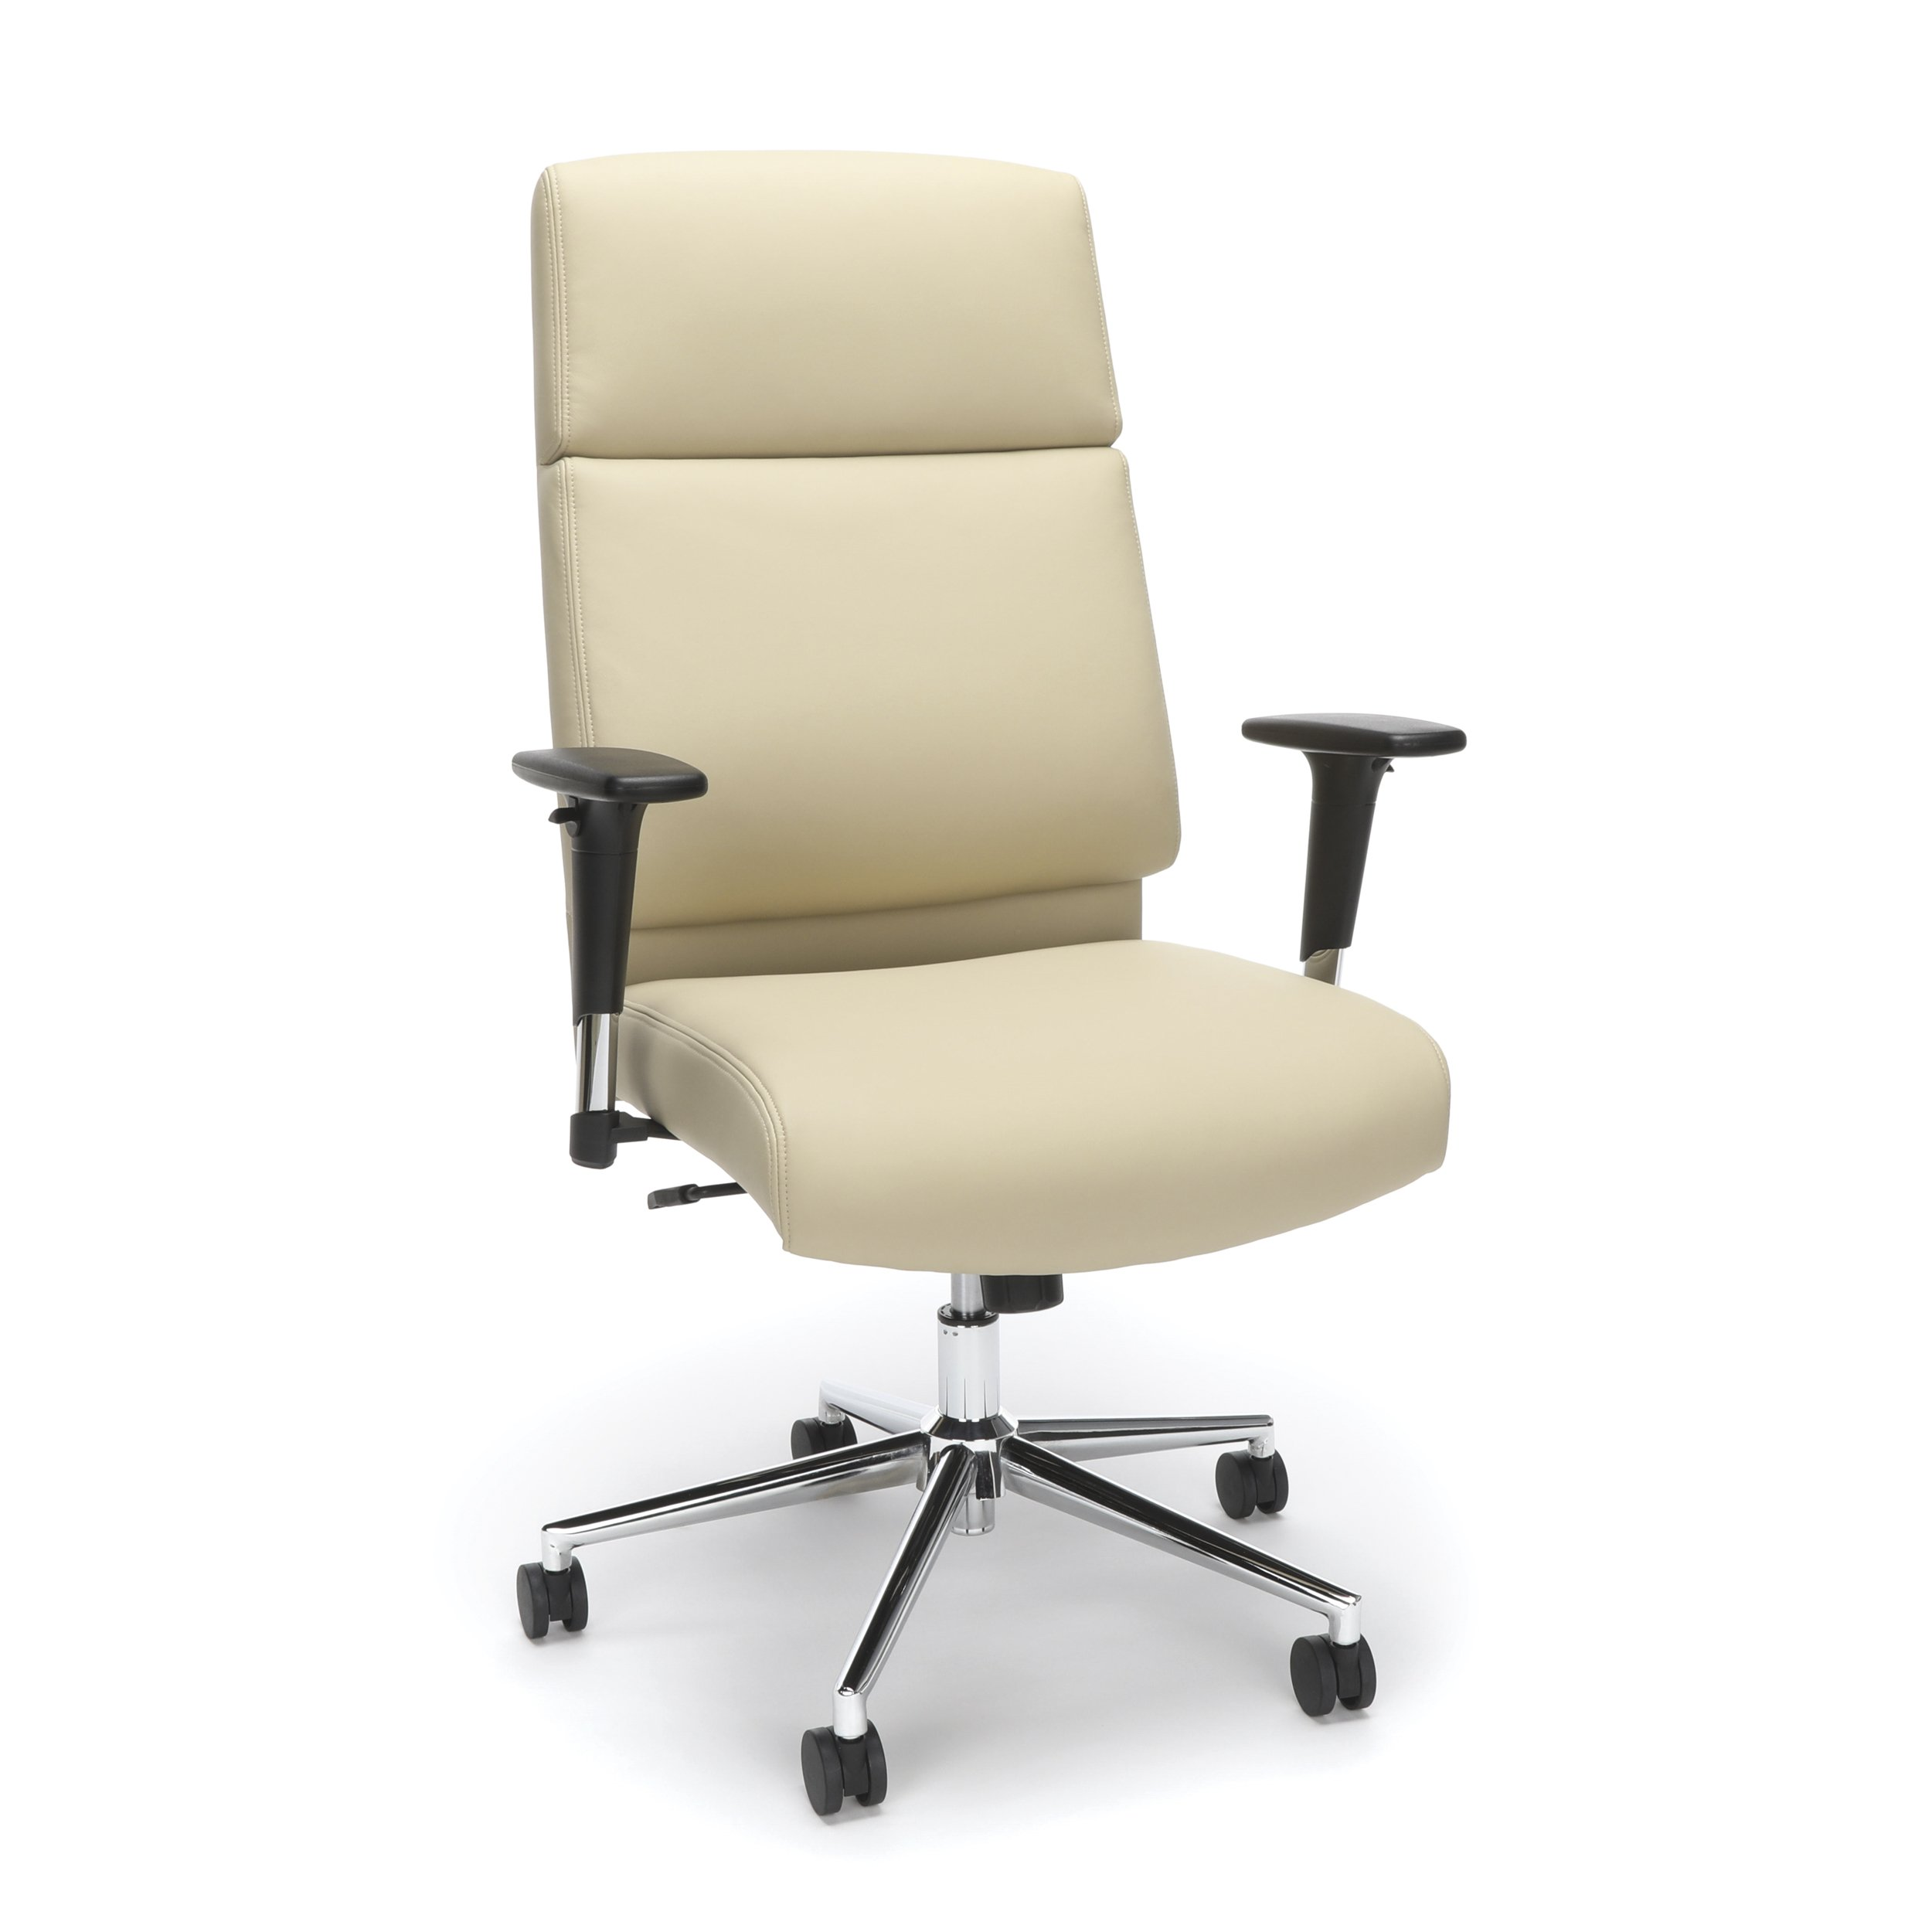 Bonded Leather Manager Chair, High Back Office Chair for Computer Desk - Cream (568-CRM) by OFM